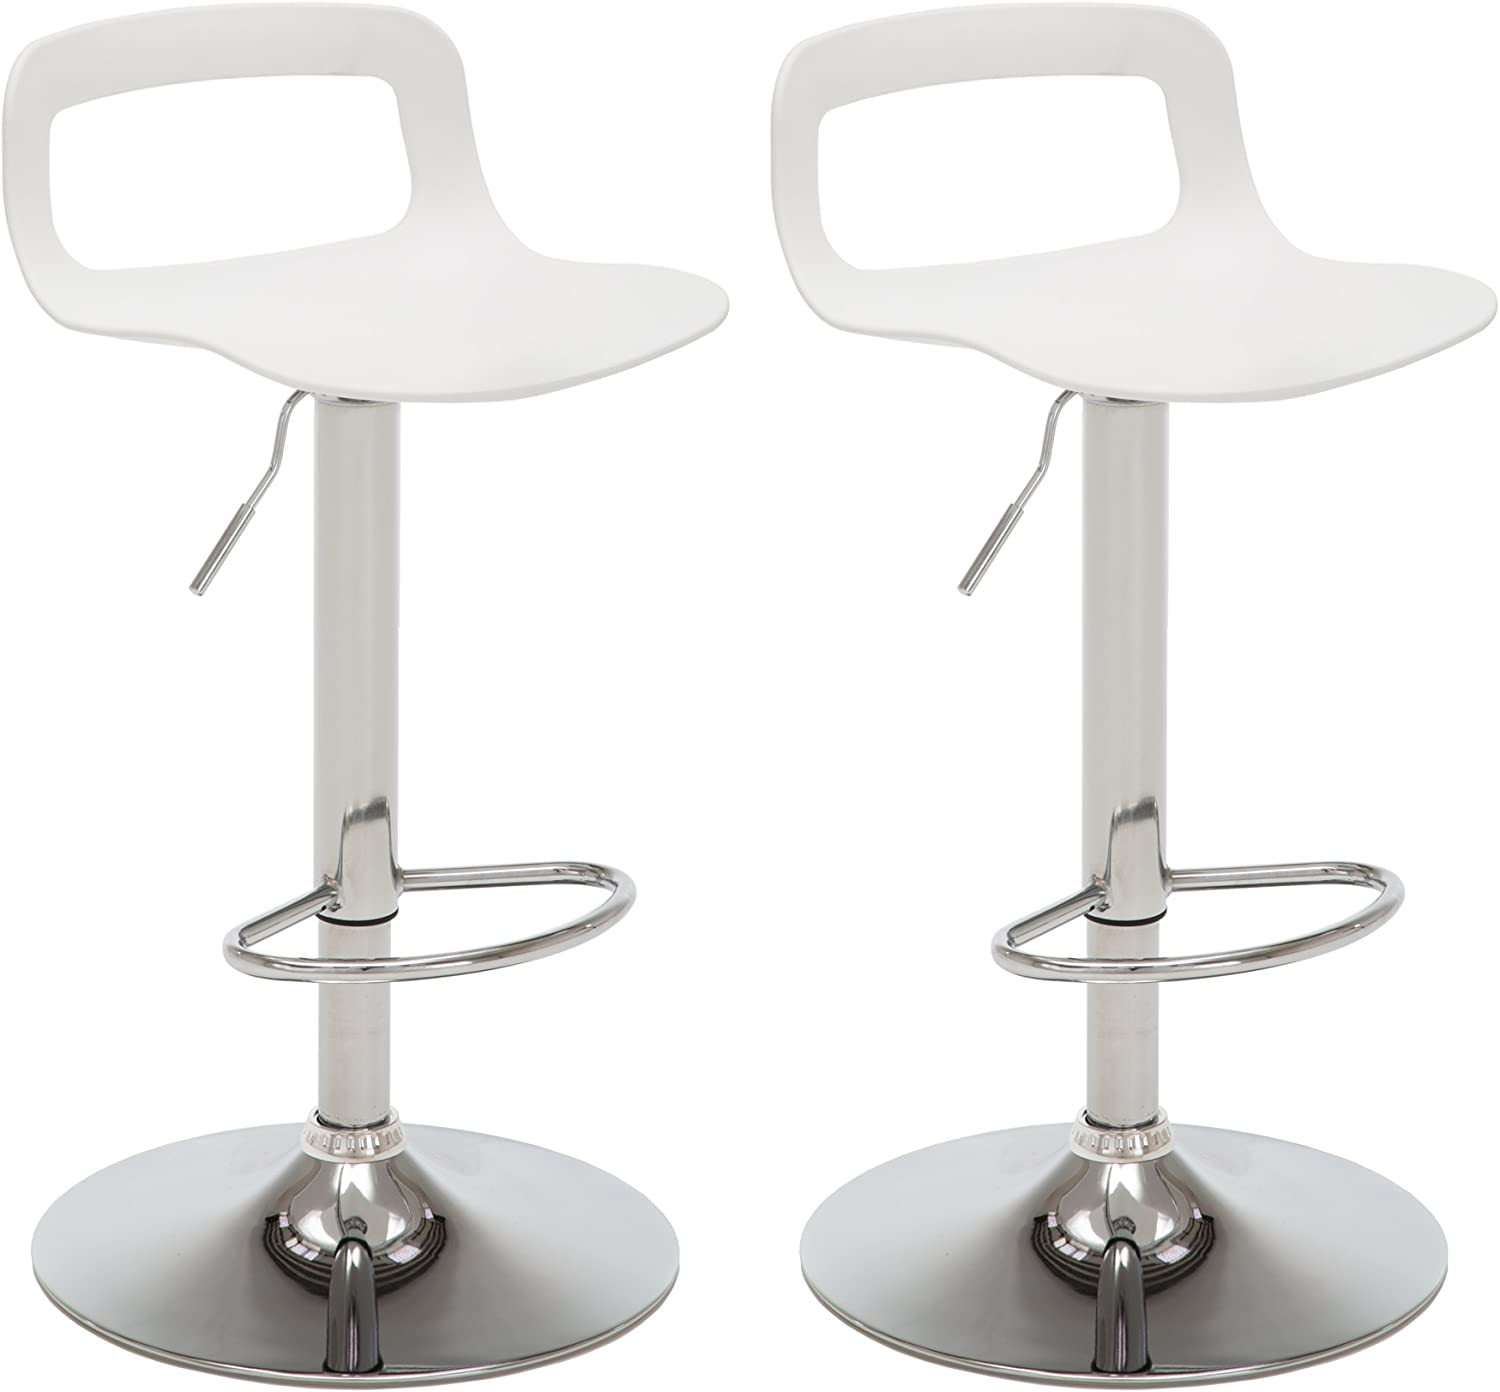 NOBPEINT Contemporary Chrome Air Lift Adjustable Swivel Bar Stool, Set of 2, White